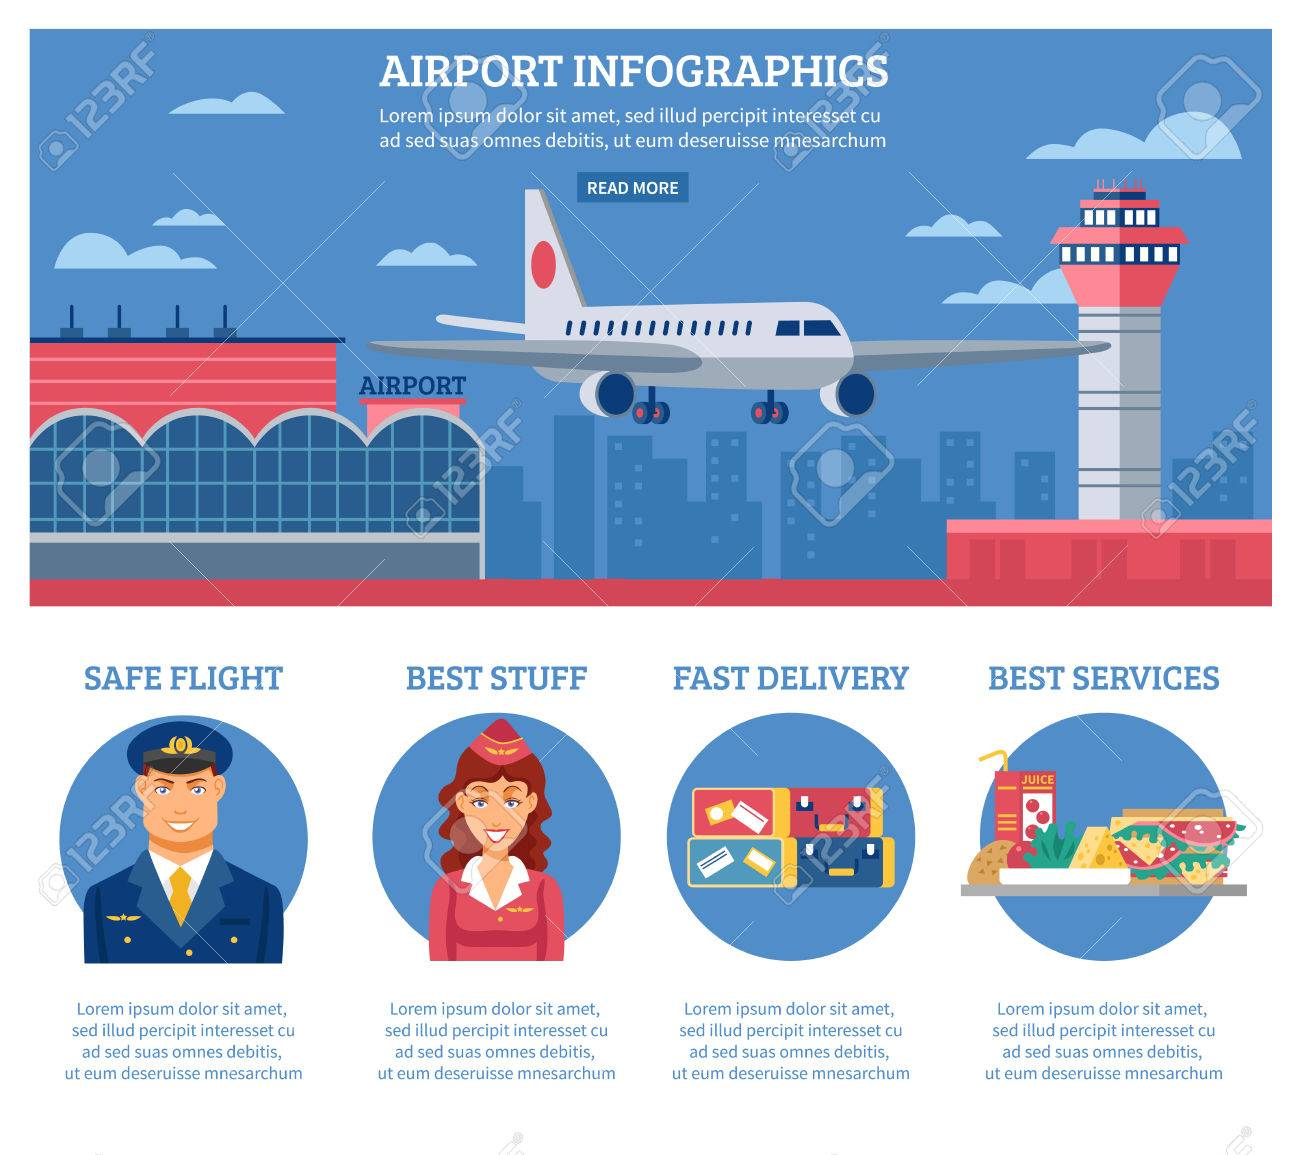 airport infographics design template with description of safe